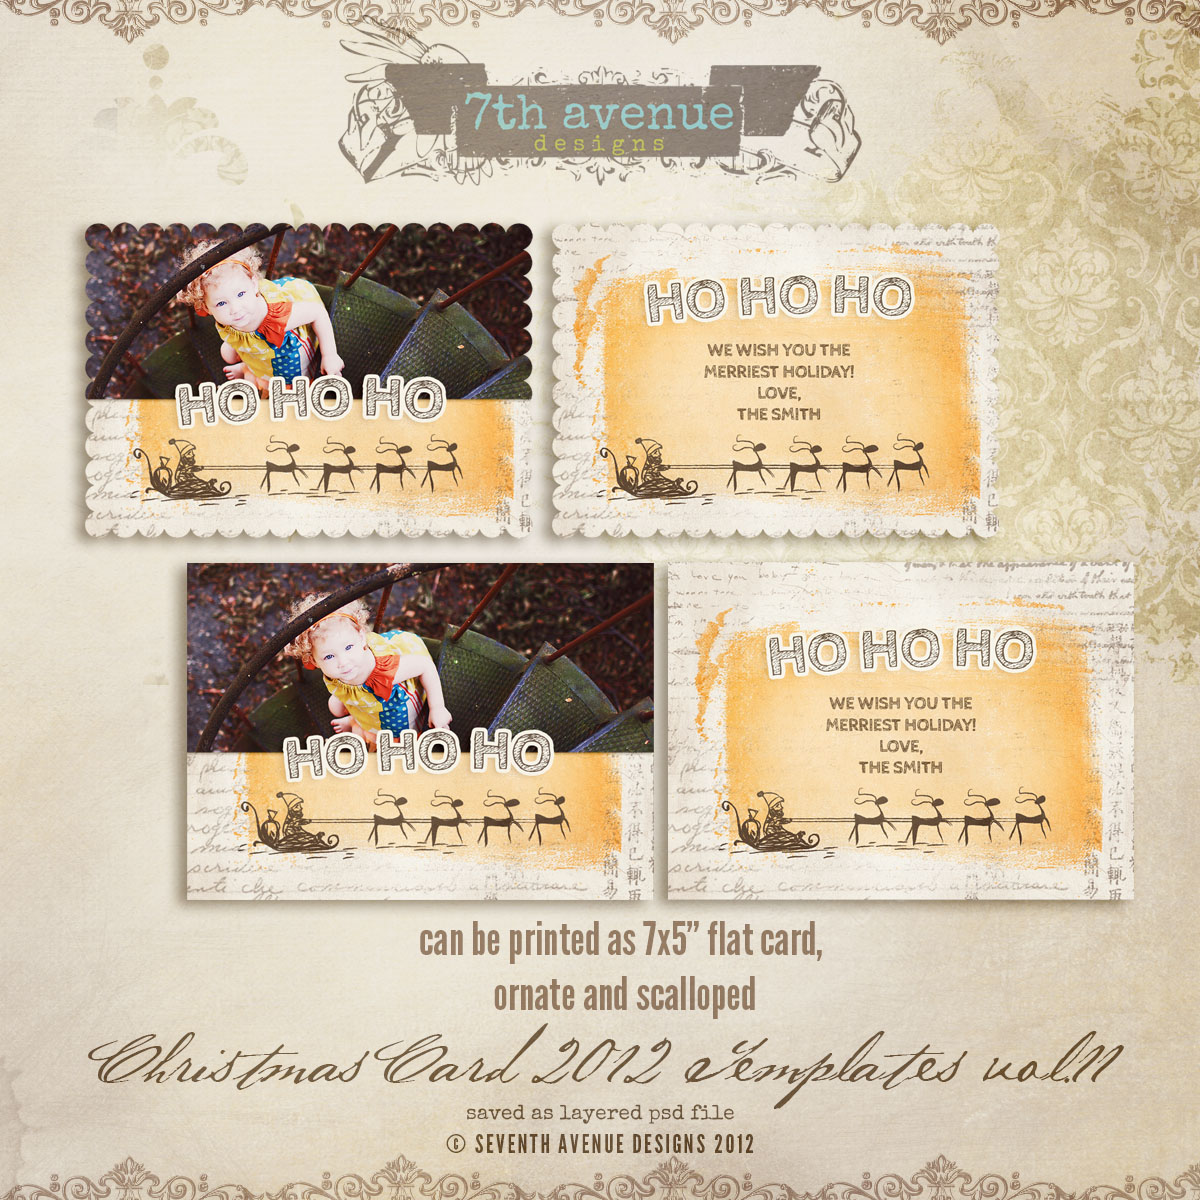 2012 Christmas Card Templates vol.11 -- 5x7 ornate